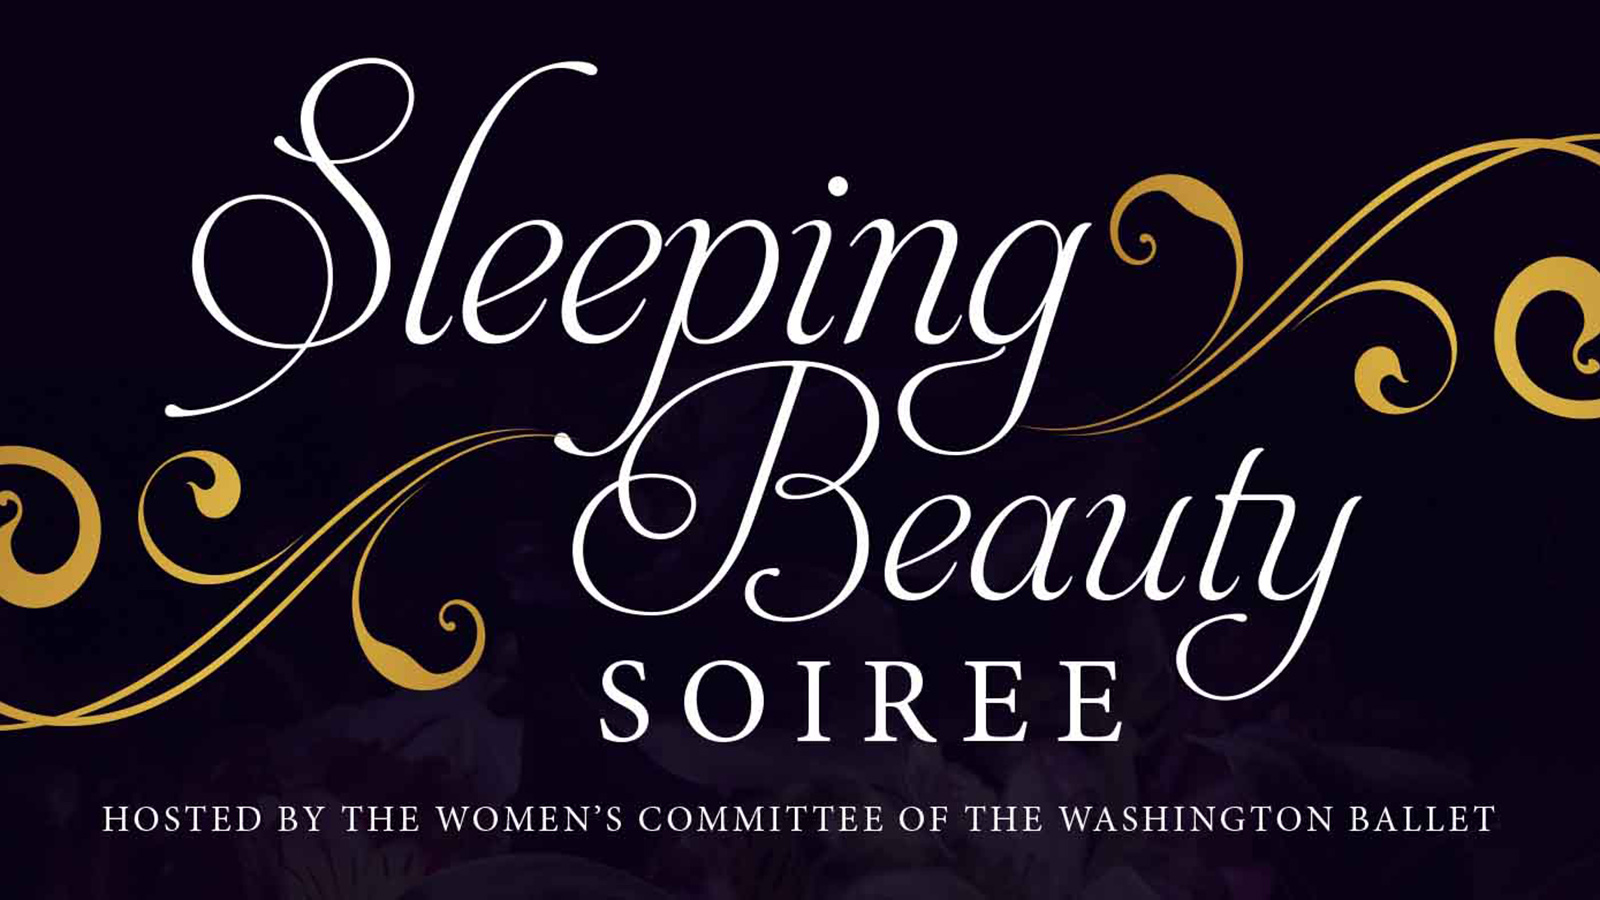 Sleeping Beauty Soiree